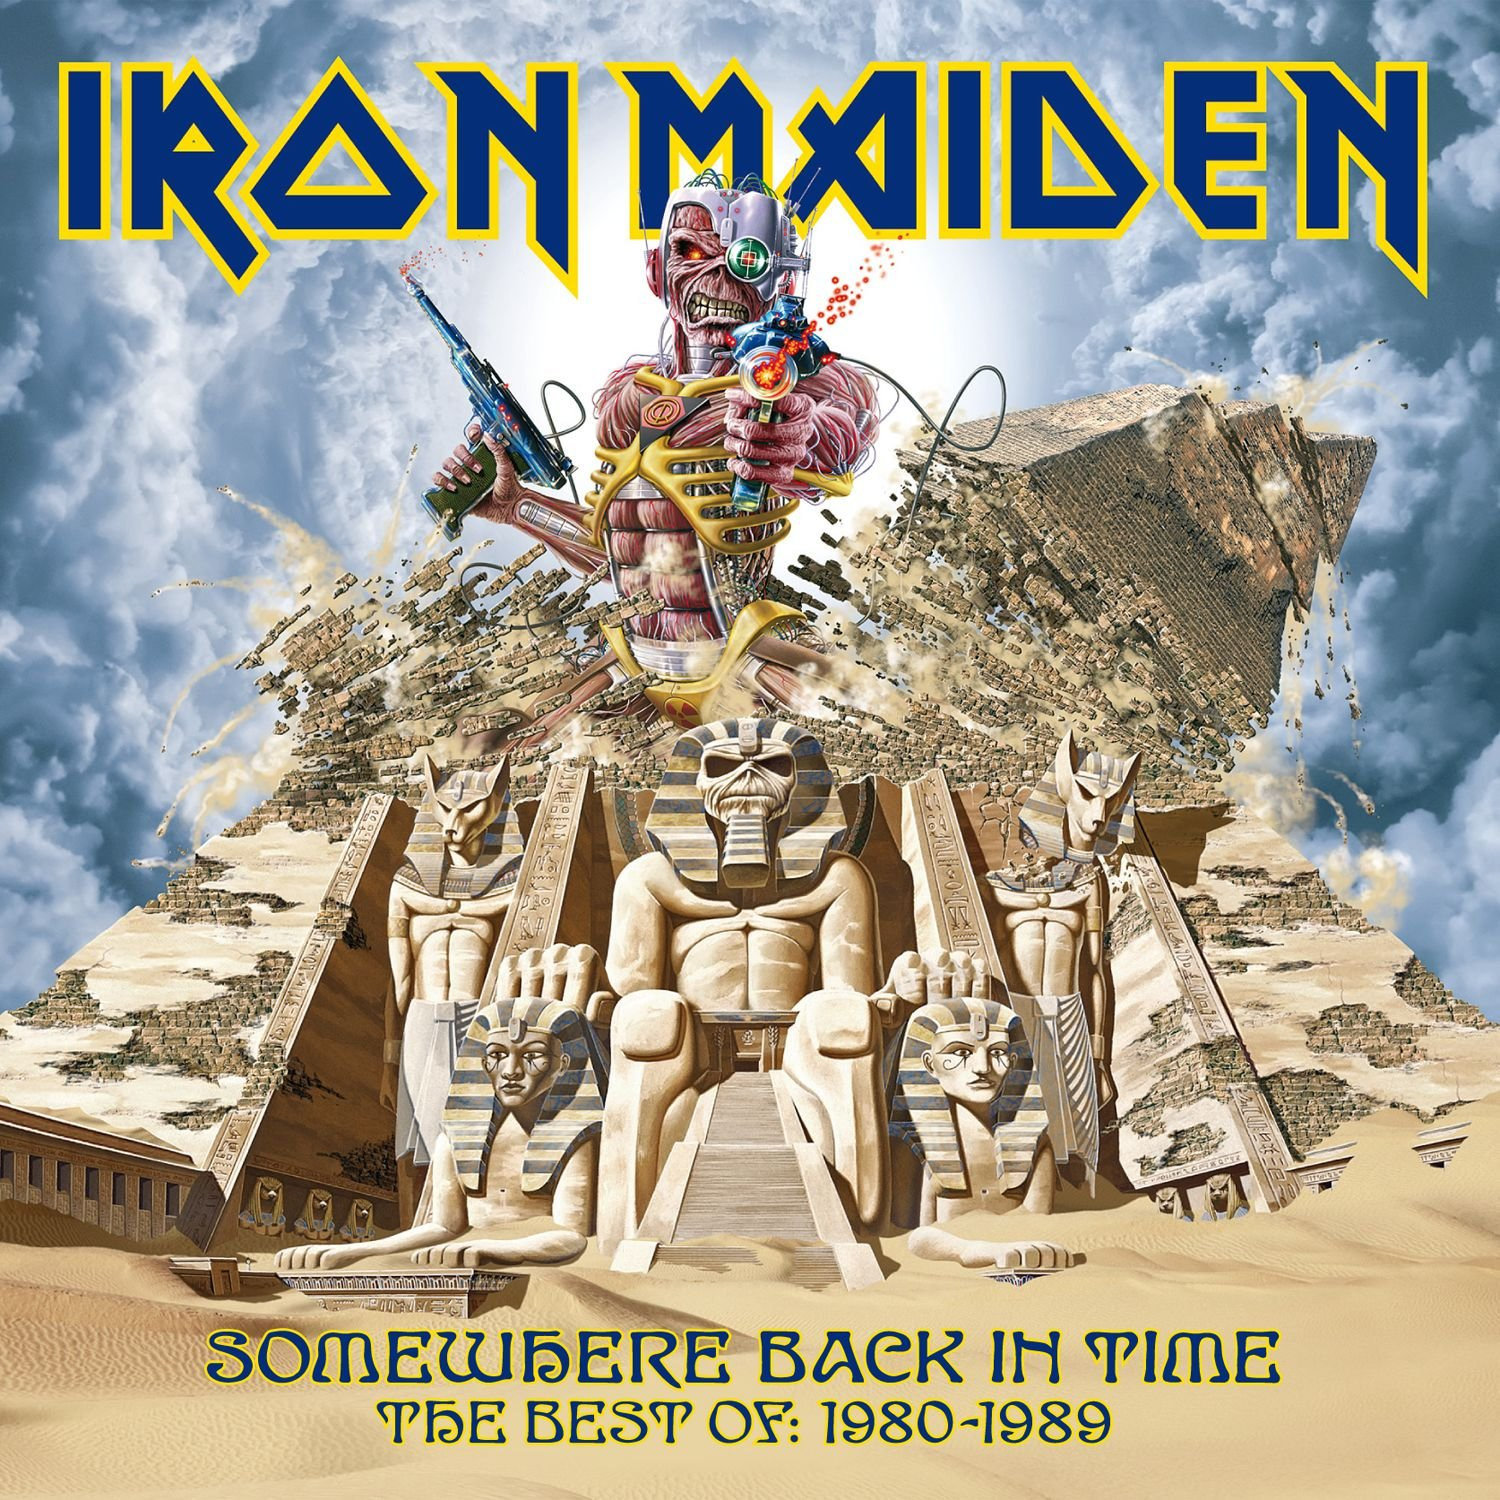 Iron Maiden — Somewhere Back in Time — The Best Of 1980-1989 (2008)